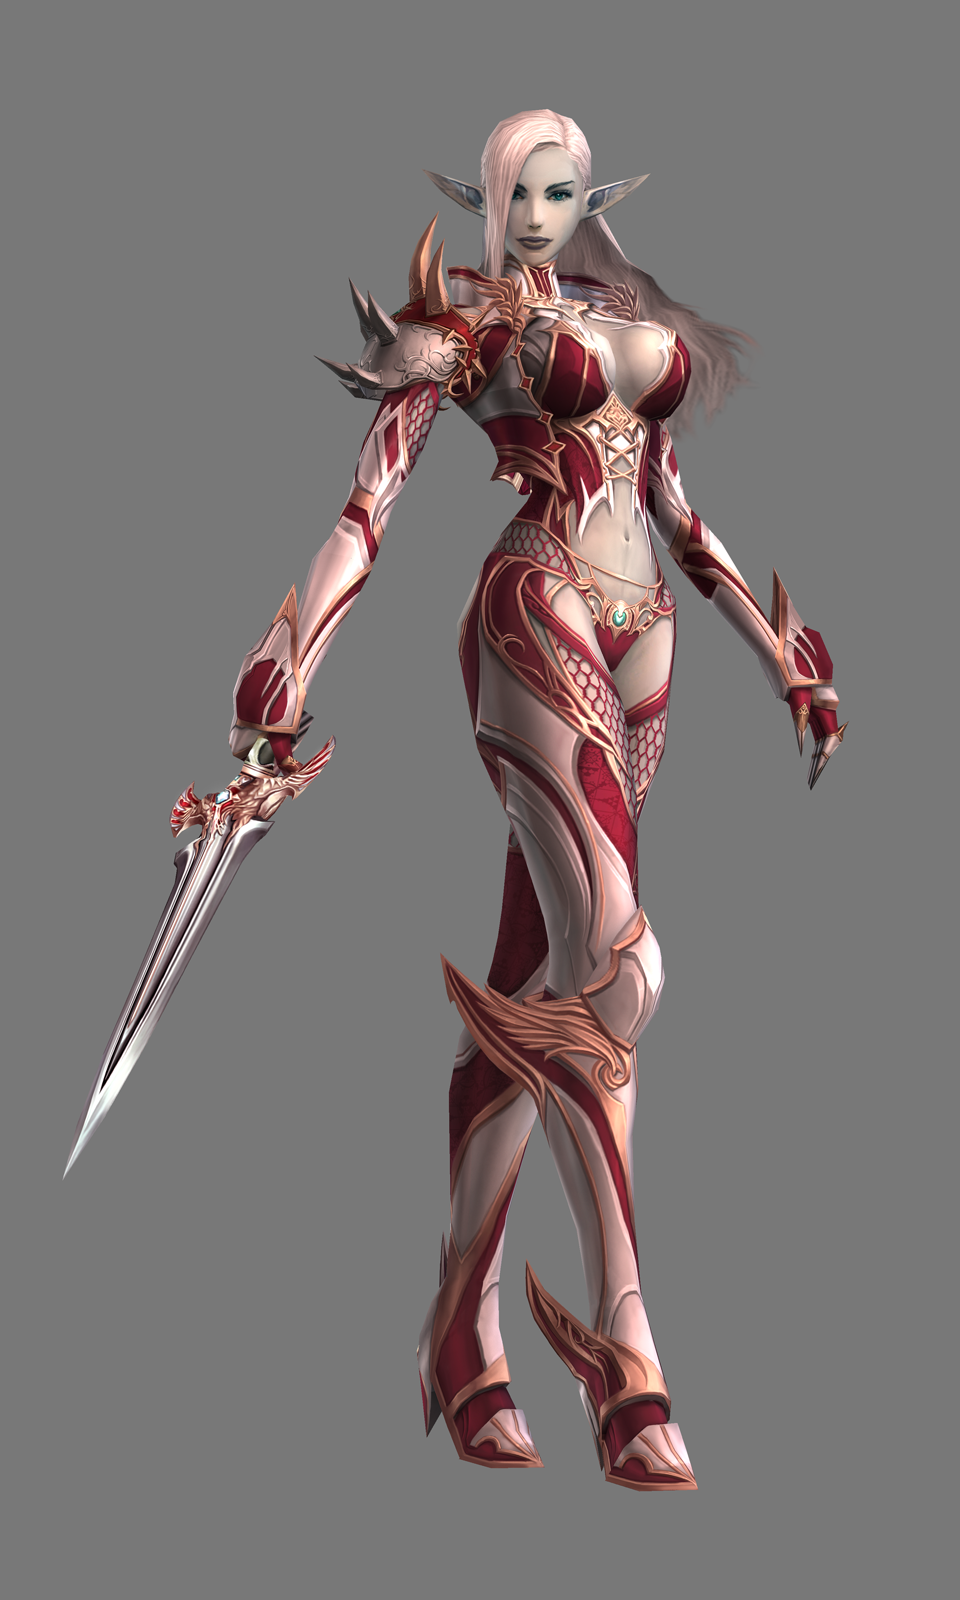 Nude lineage 2 characters in armors exposed scene